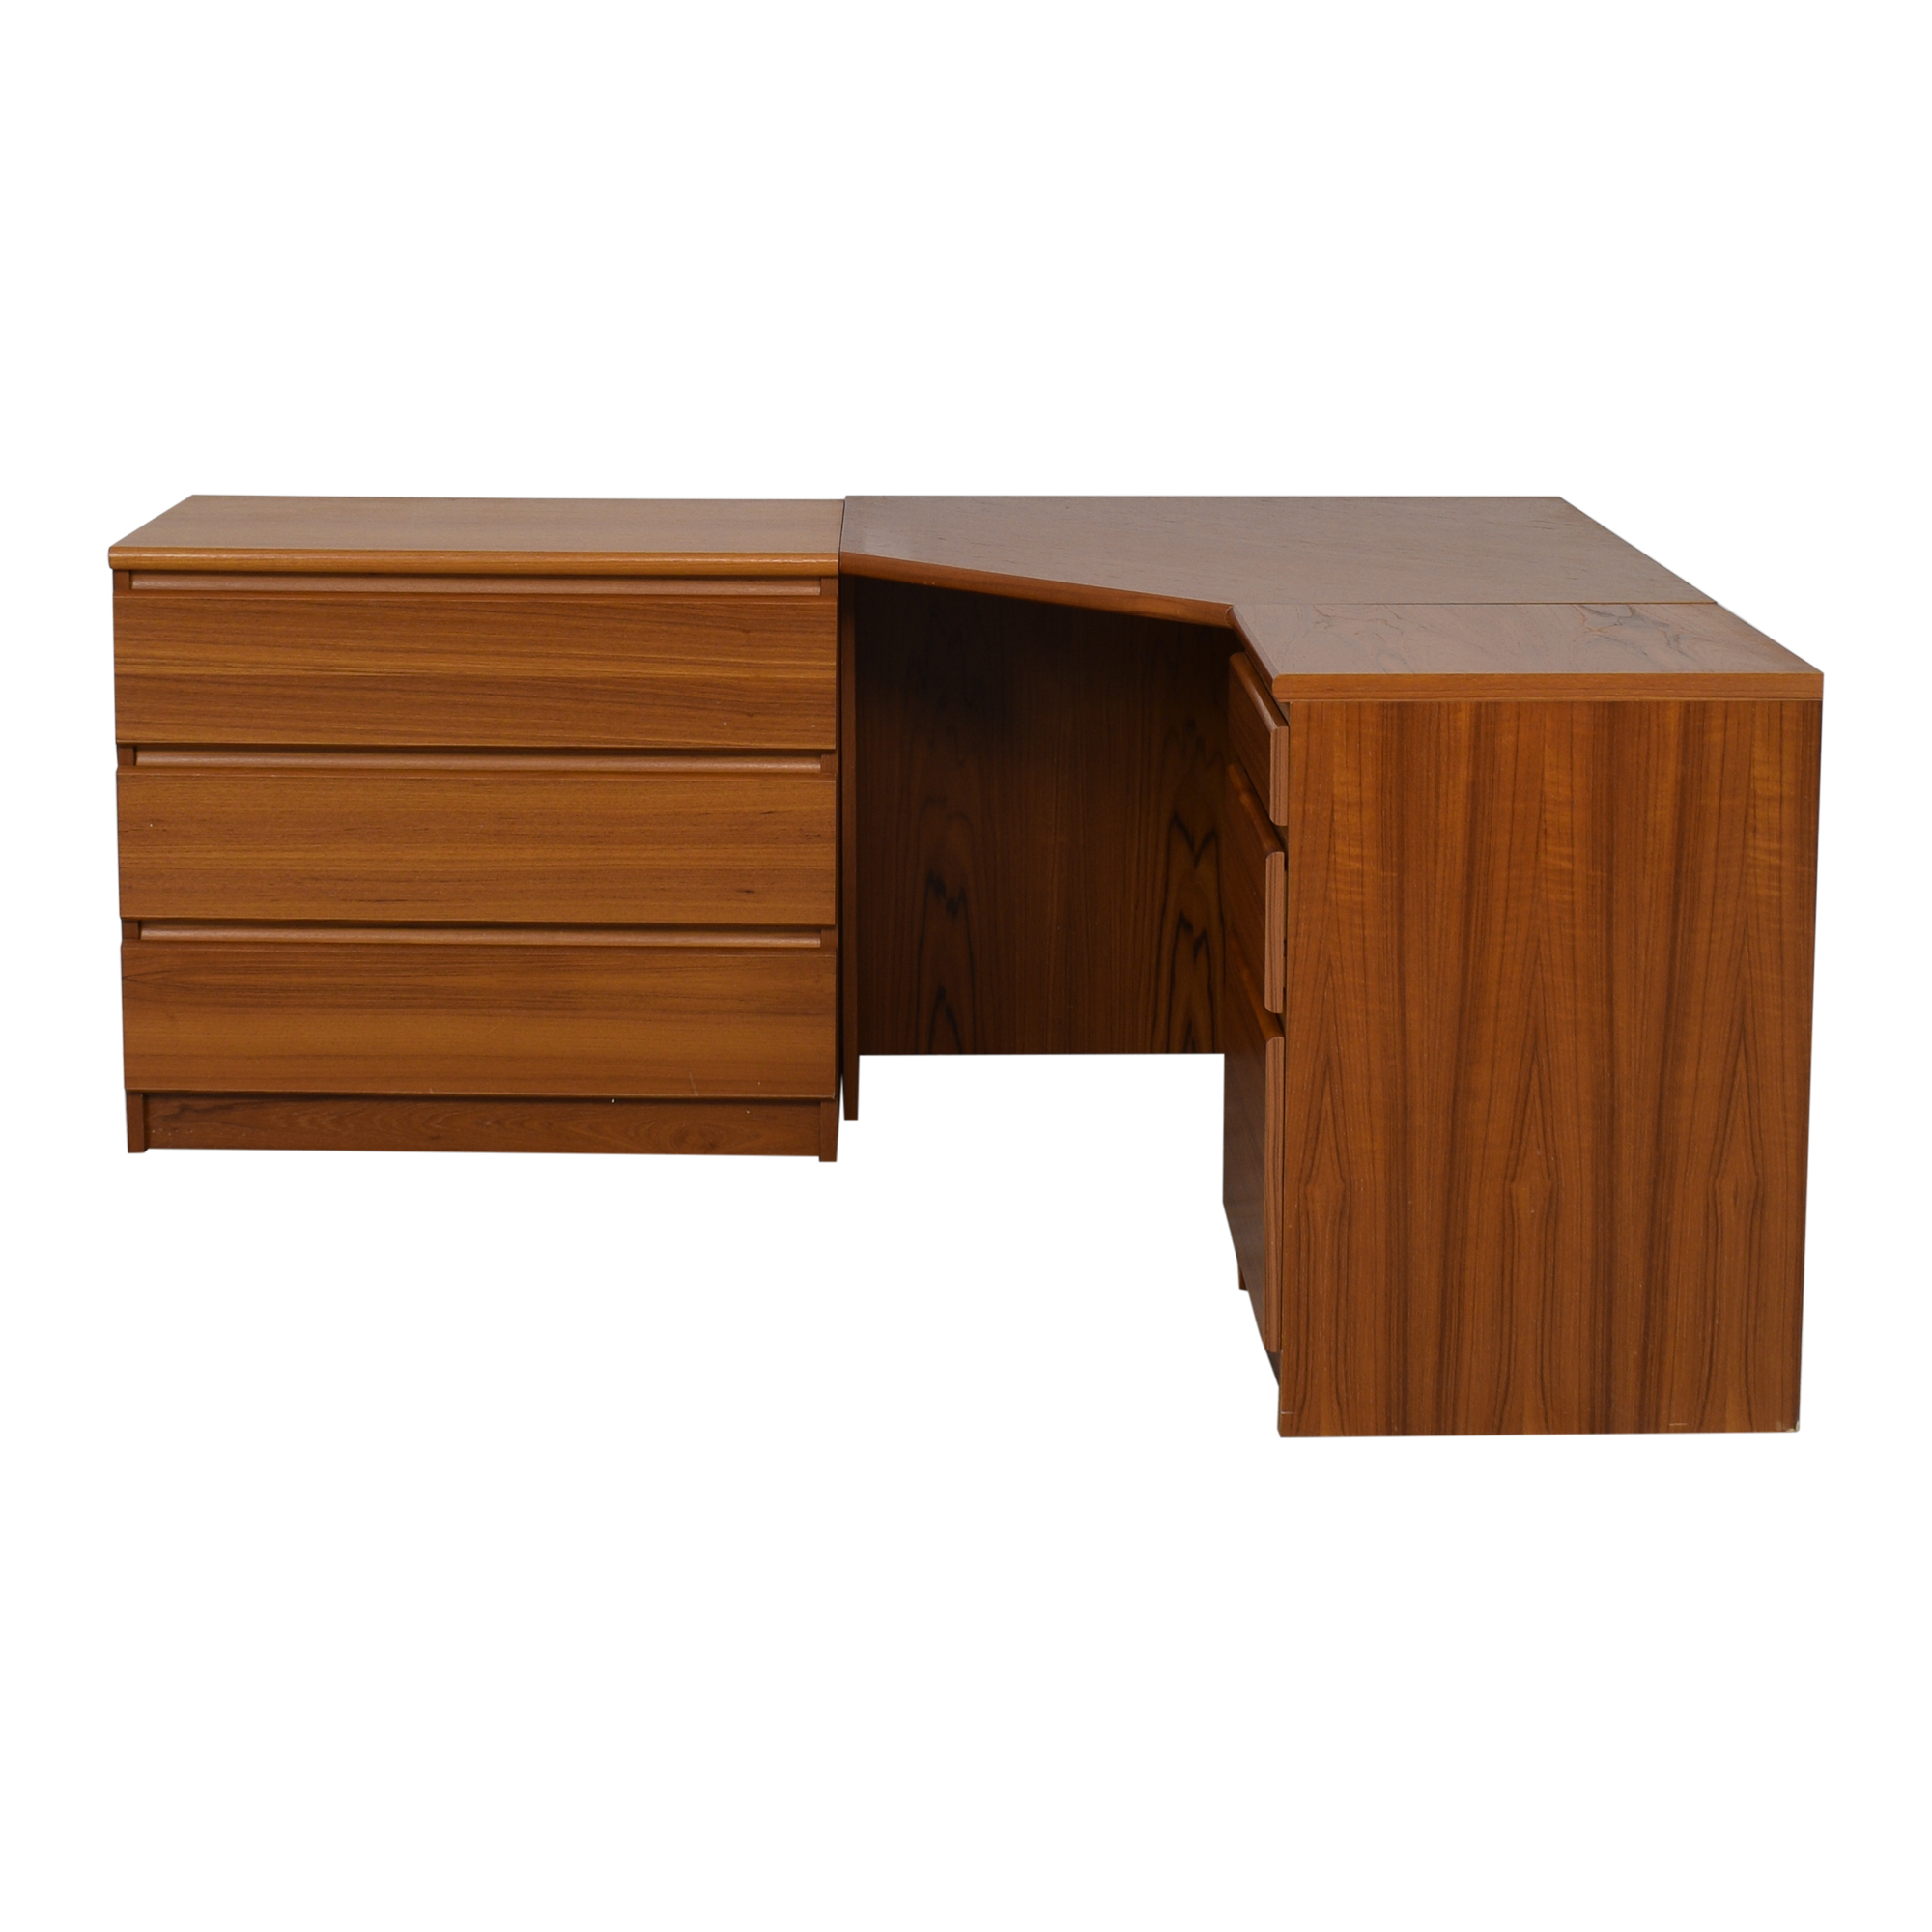 Scandinavian Designs Scandinavian Designs Corner Desk with Storage Cabinet Tables